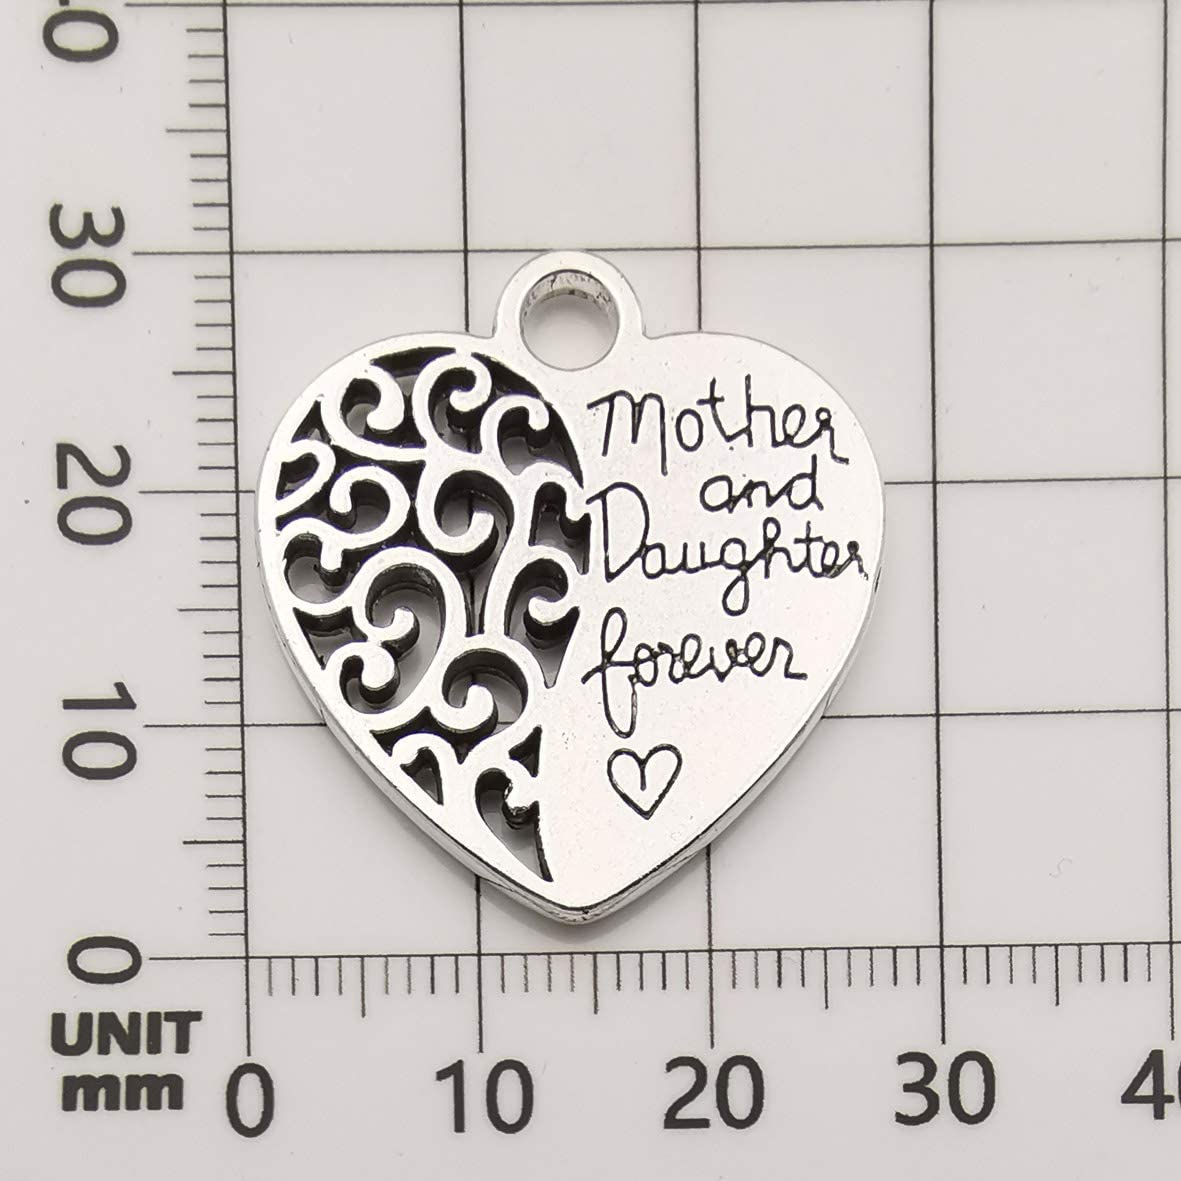 10342 15pcs Craft Supplies Antique Silver Heart Mother and Daughter Forever Words Charms Pendants for Jewelry Making Crafting Findings Accessory for DIY Necklace Bracelet Earrings